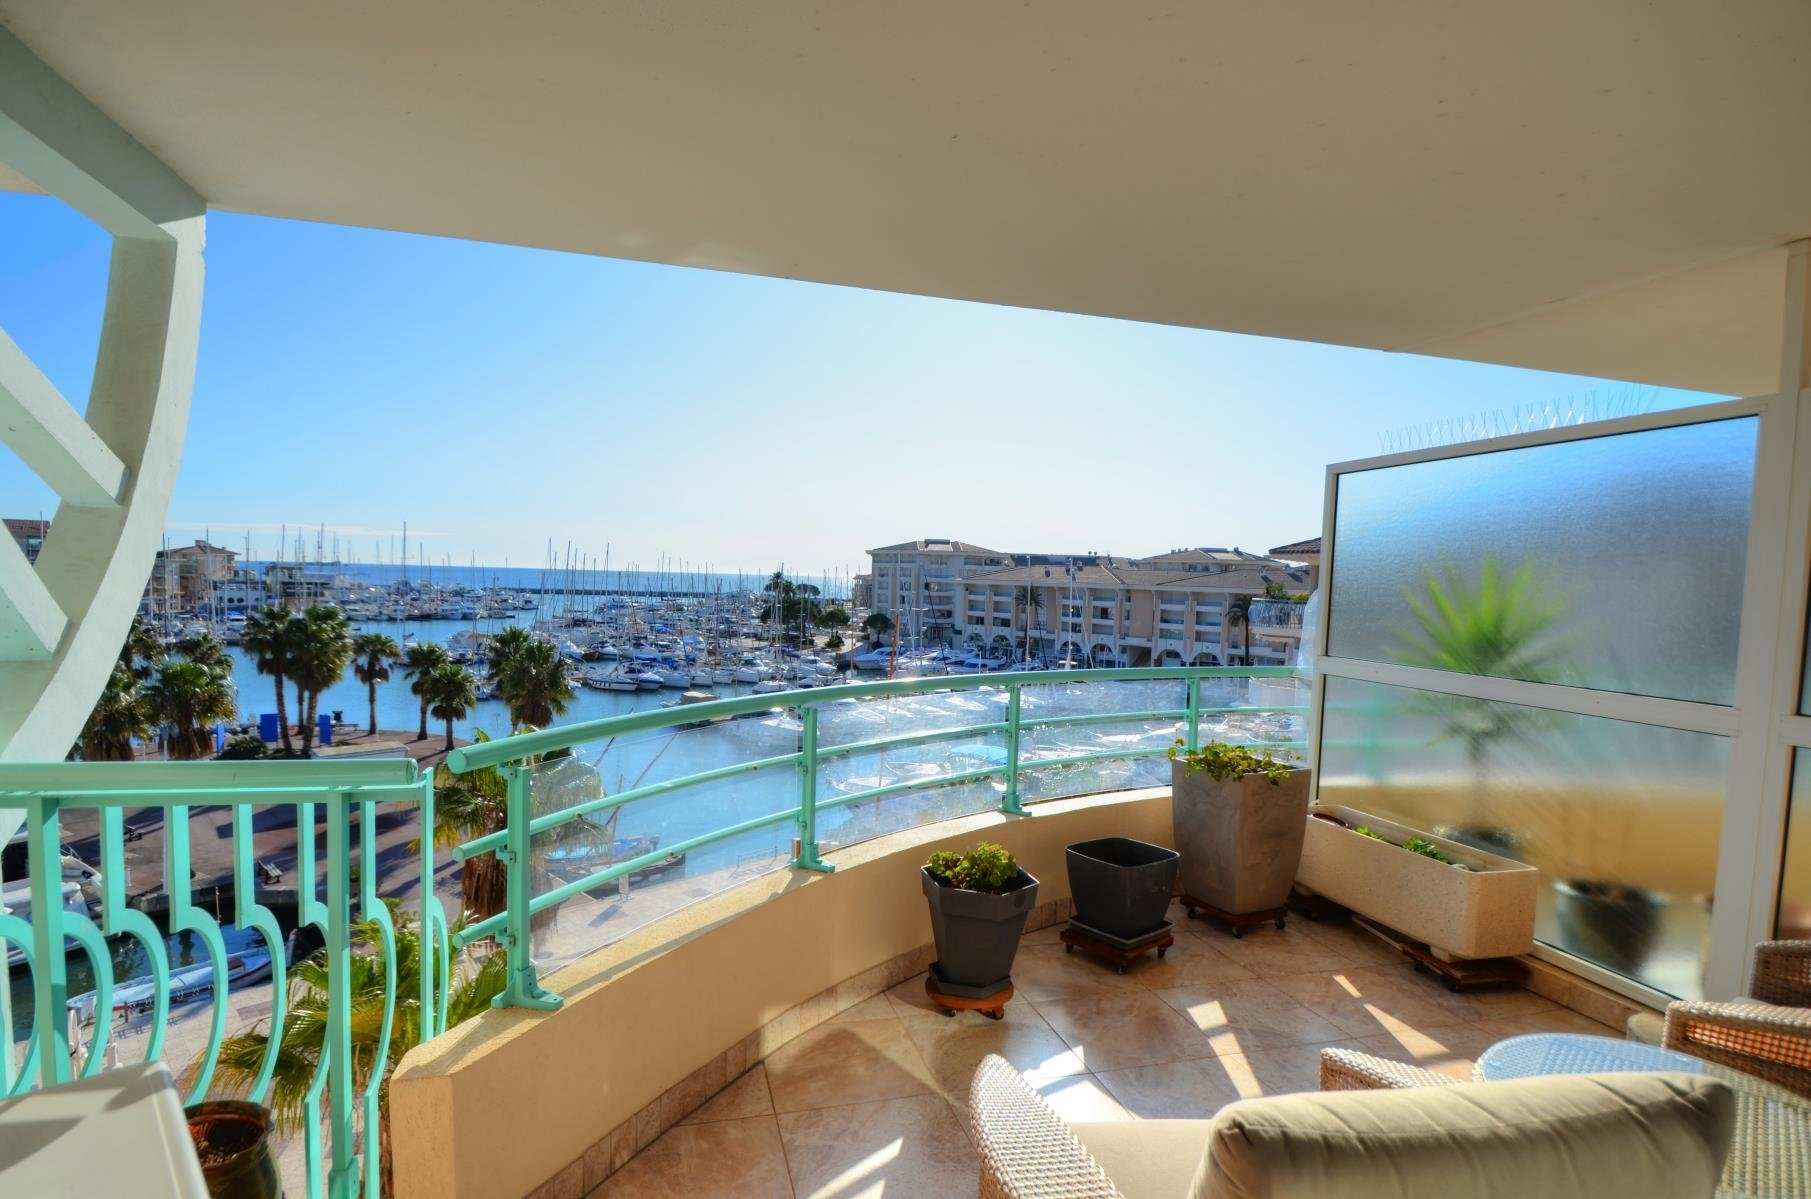 PENTHOUSE WITH SEA VIEW AT PORT FREJUS COTE D'AZUR